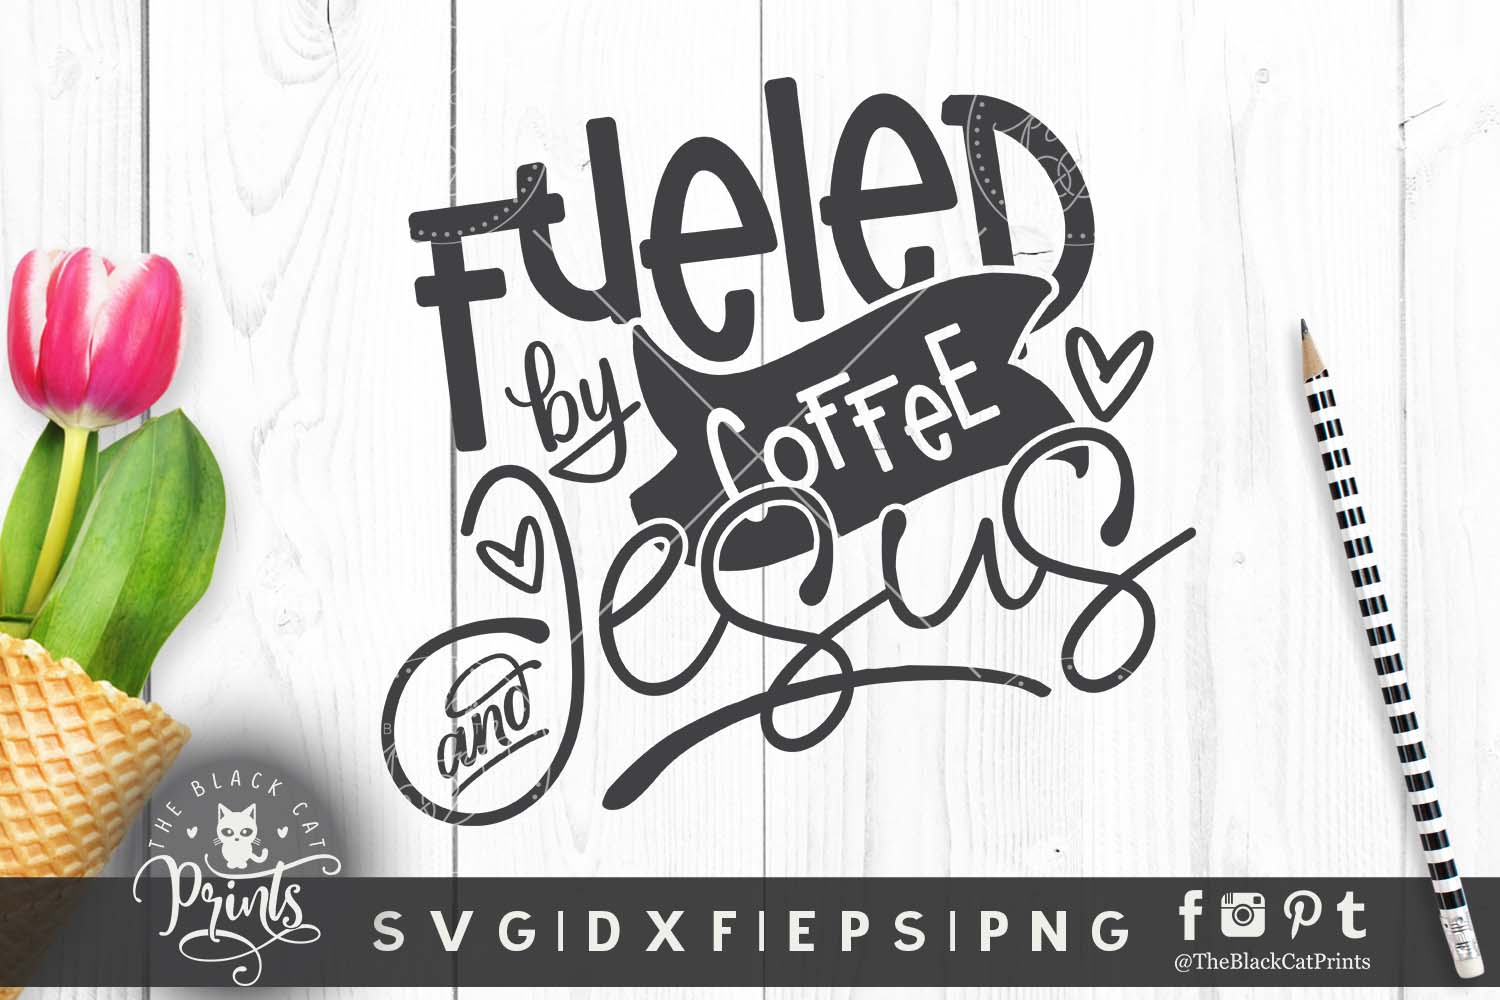 Download Free Fueled By Coffee And Jesus Svg Graphic By Theblackcatprints for Cricut Explore, Silhouette and other cutting machines.